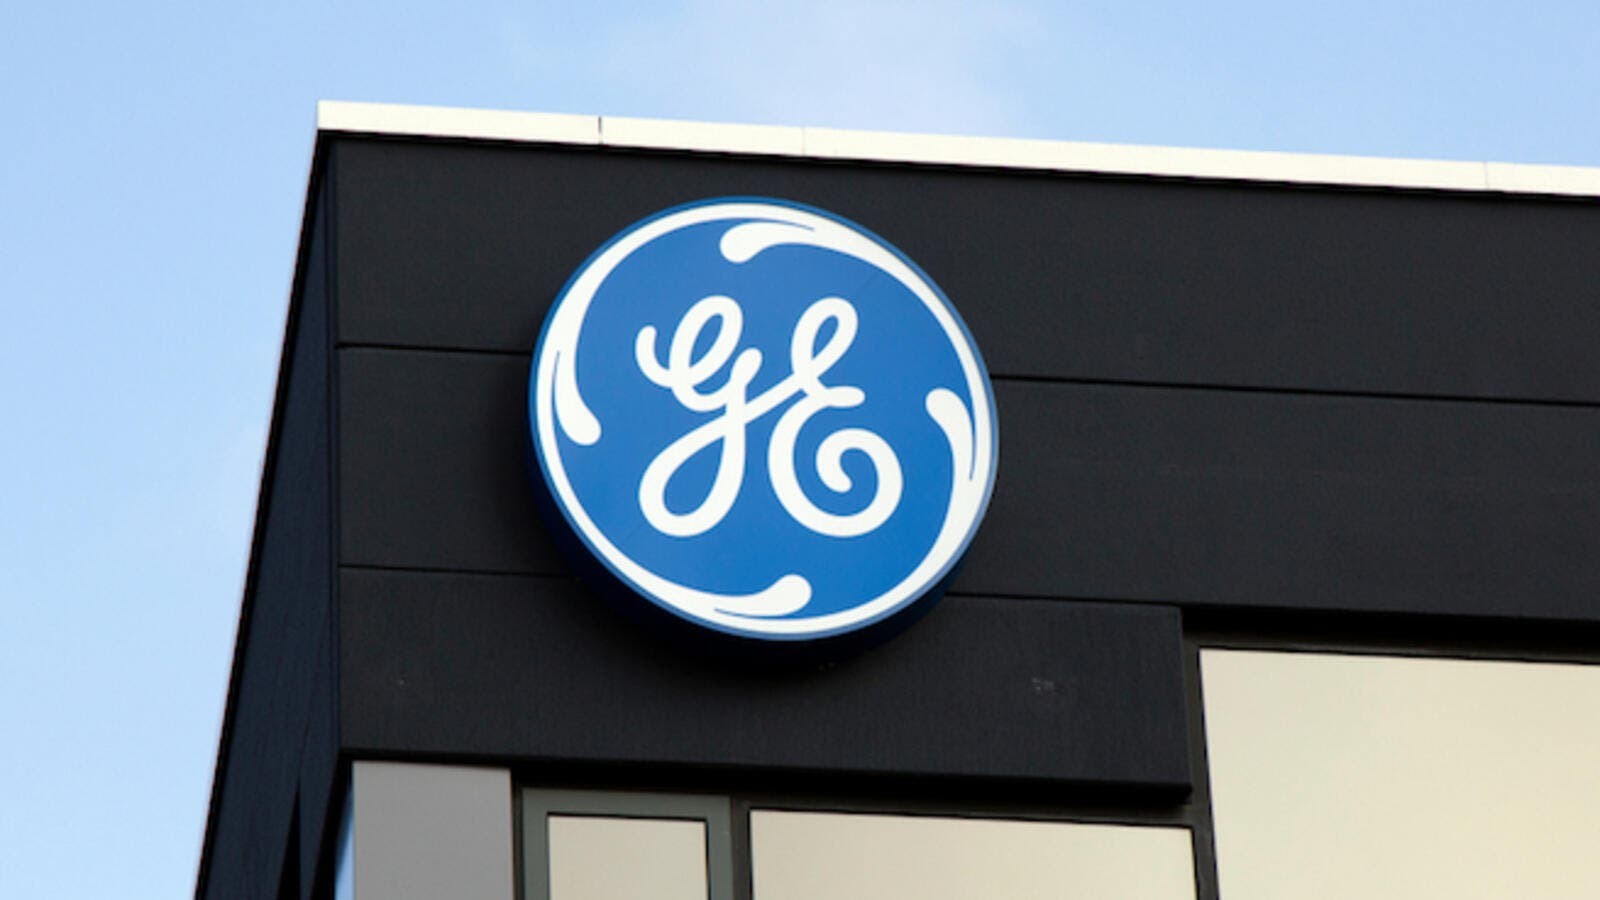 The turbine unit contract is Boston-based GE's biggest in the Middle East and North Africa and Turkey so far this year. (Shutterstock)